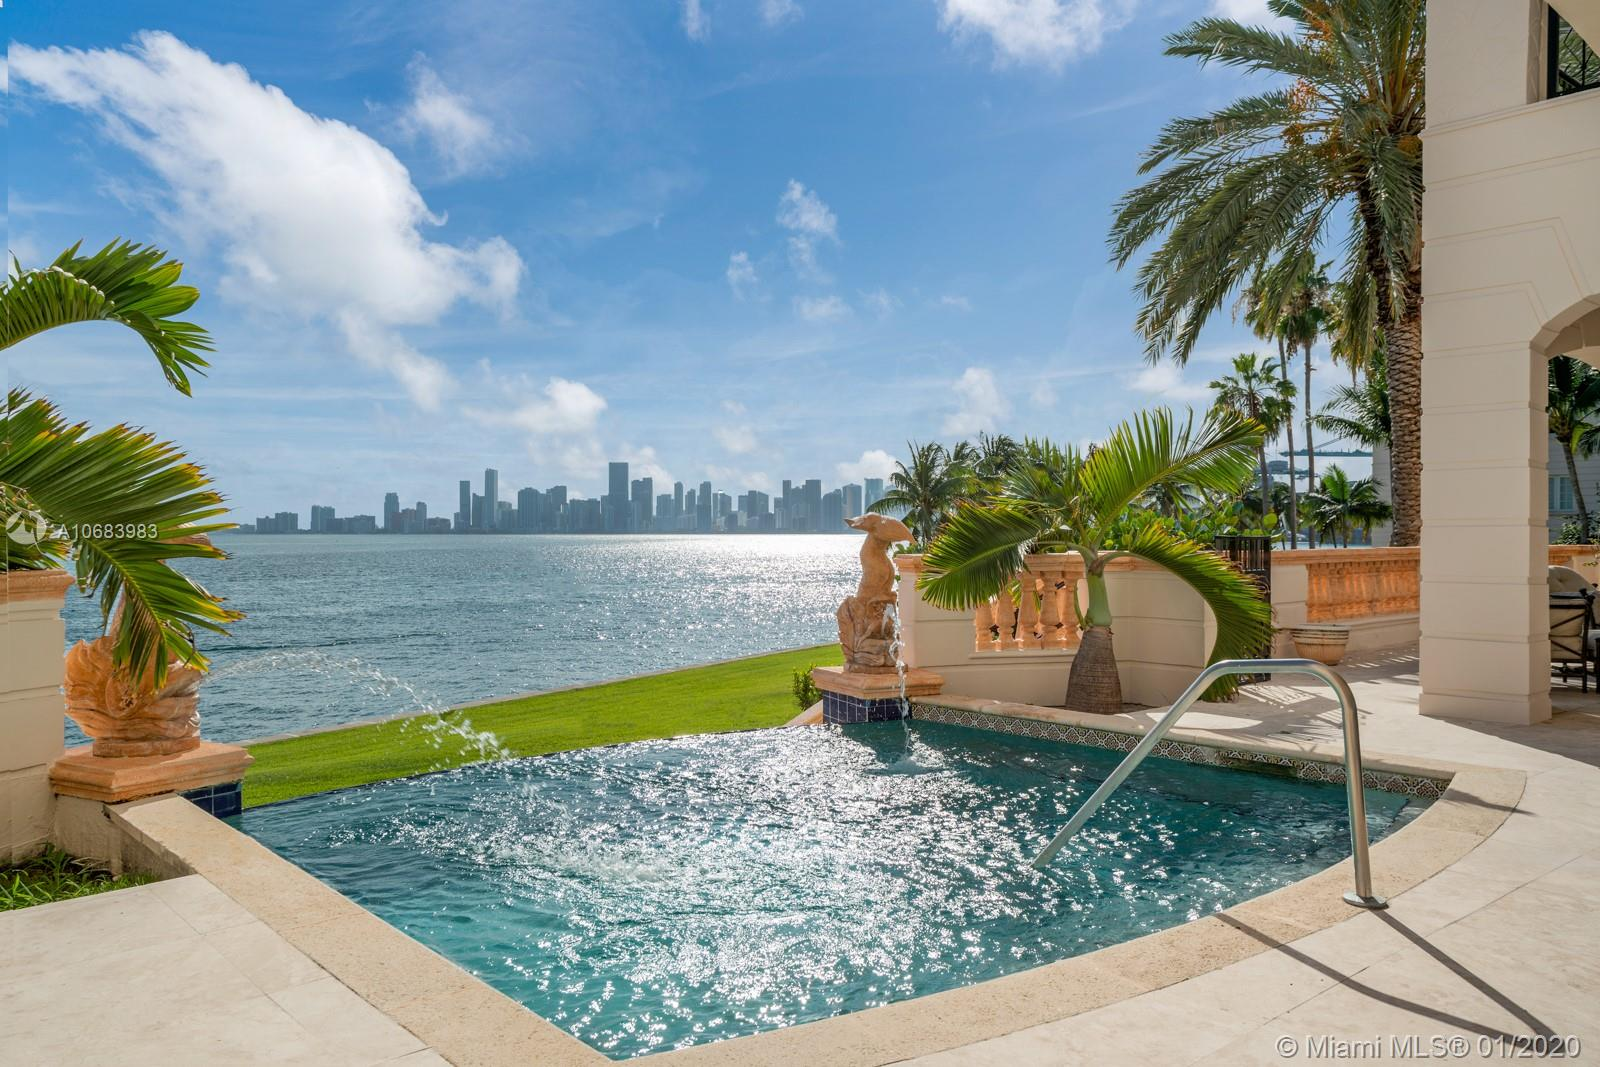 Exquisite bayfront villa on the exclusive Fisher Island, America's wealthiest zip code. This grand, 6-bedroom/ 7.5 bath stunner boasts 6,618sqft of luxury with an impressive 2,000sqft terrace overlooking Biscayne Bay and the Miami skyline. Custom interiors by world-renowned designer Steven G. Enjoy the majestic Miami sunsets from the expansive lanai featuring one of the islands only private infinity pools. Spacious living areas, well-appointed guest rooms, and a stunning master suite with attached office, huge walk-in closets, and beautiful his-and-hers master baths. Uniquely designed architecture with marble finishes throughout. Truly one of the most desirable residences available on Fisher Island.